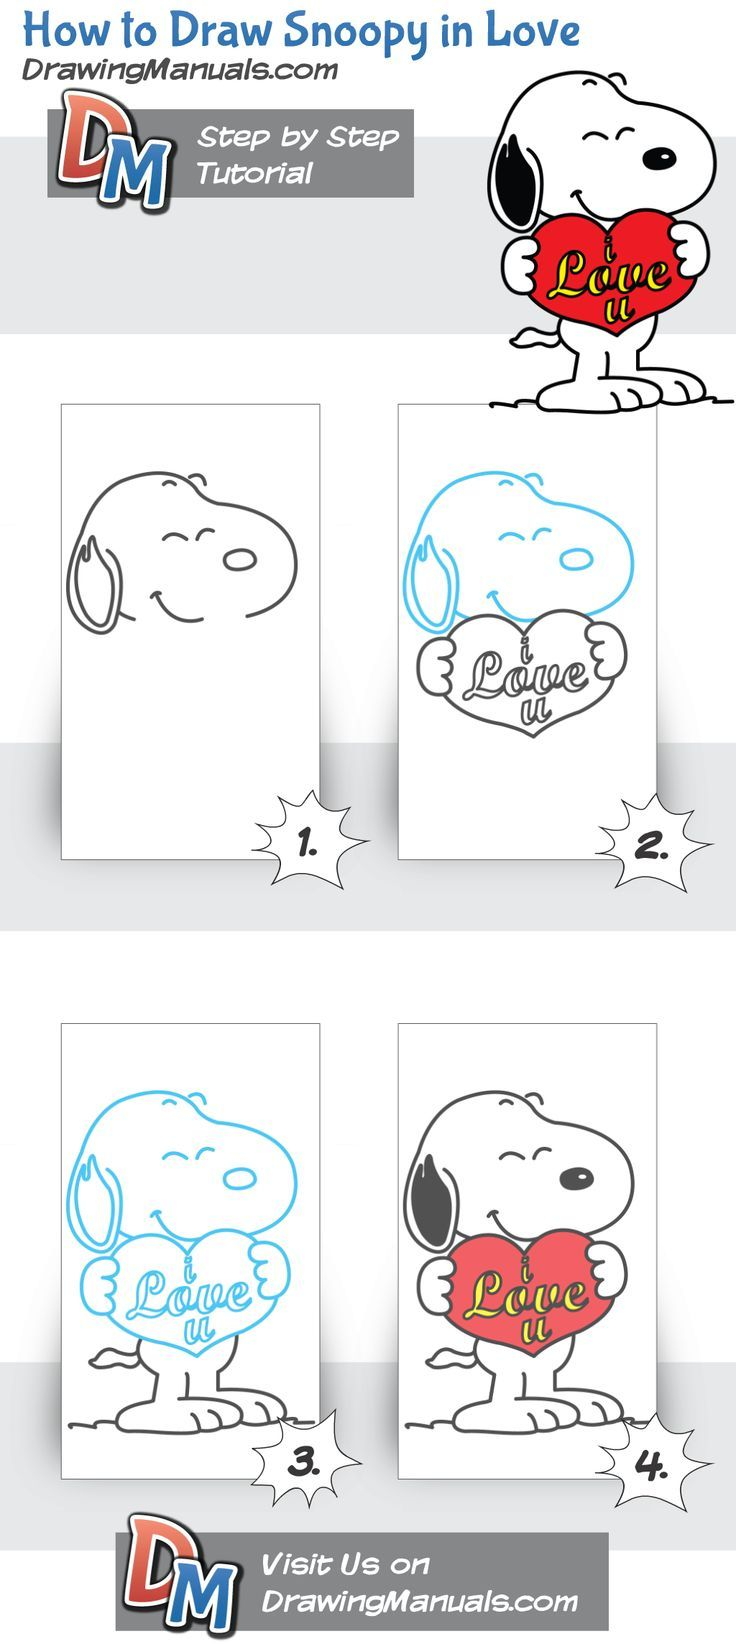 How To Draw Snoopy In Love Valentines Day Drawing For Kids In